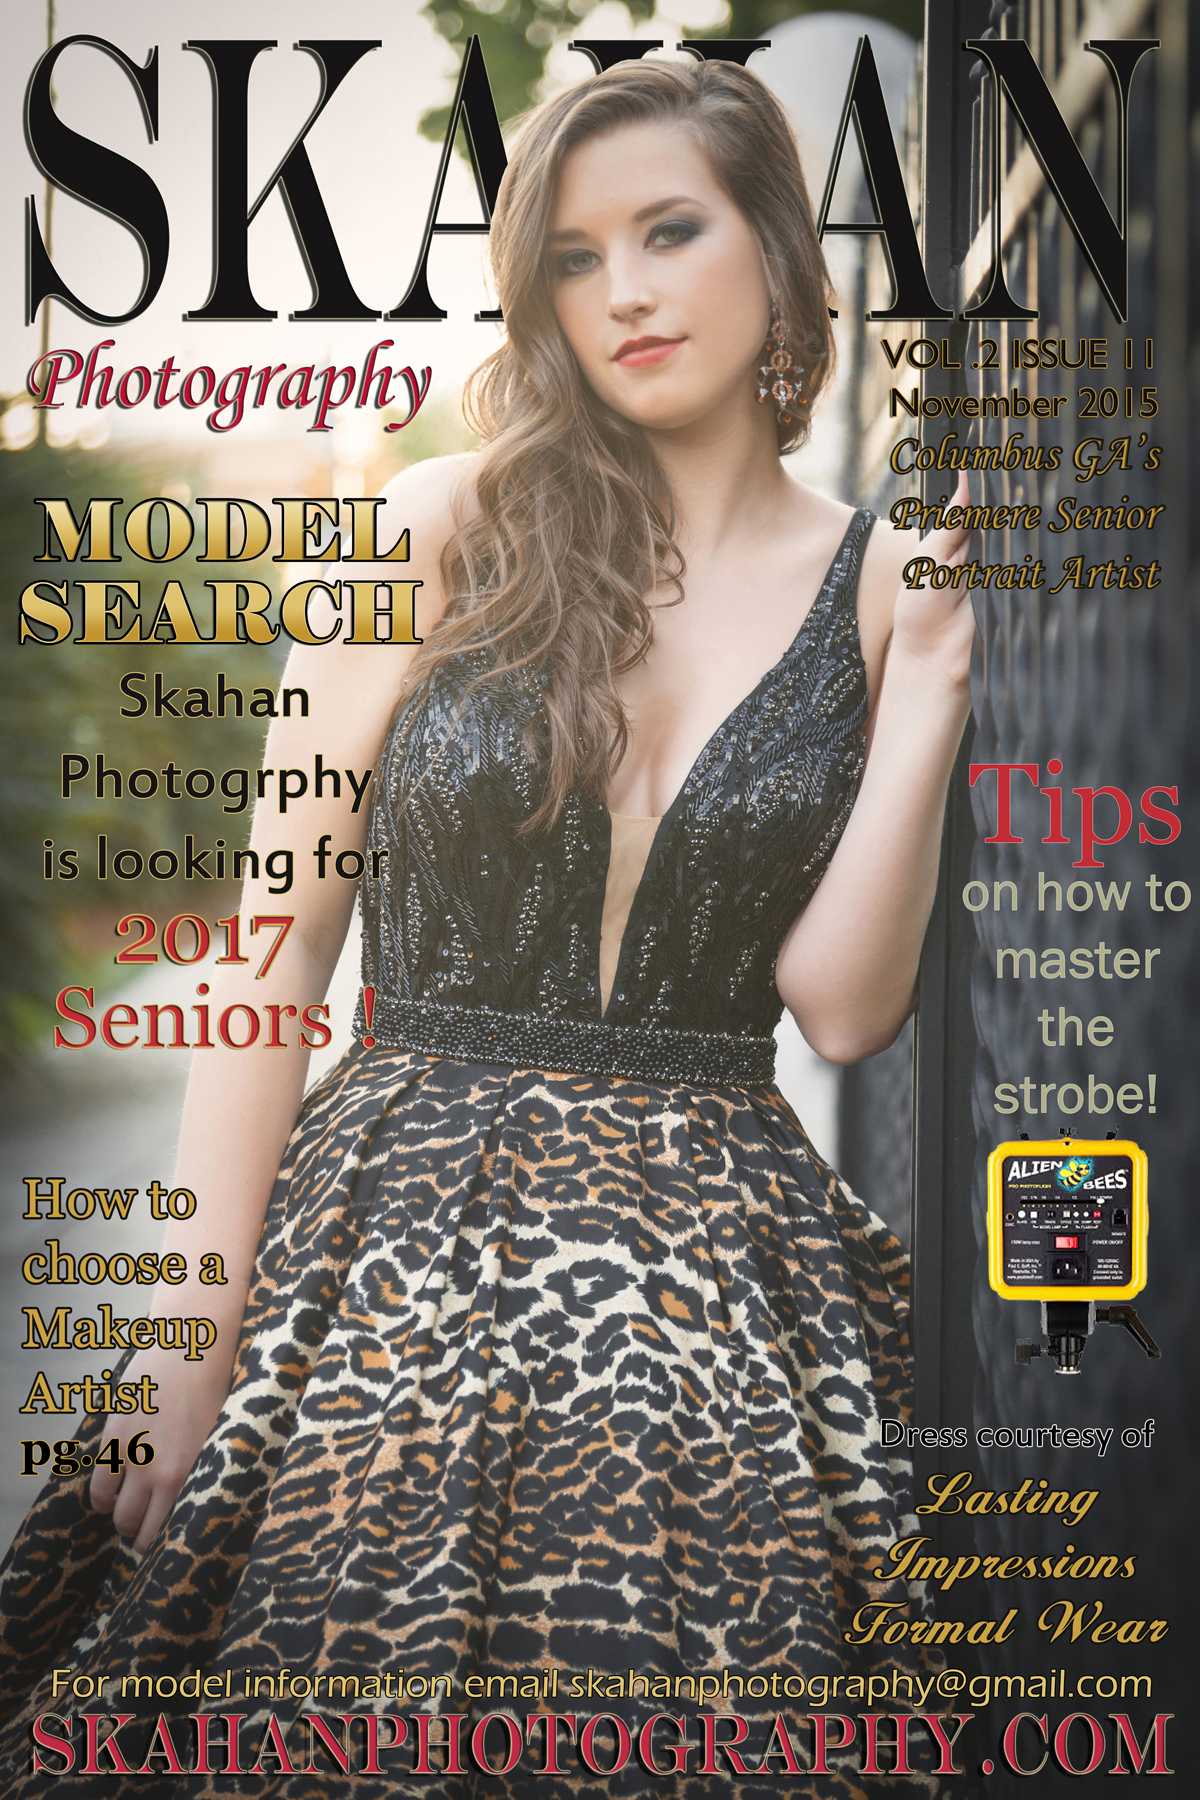 Volume 2 Issue 11 Nov 2015.jpg